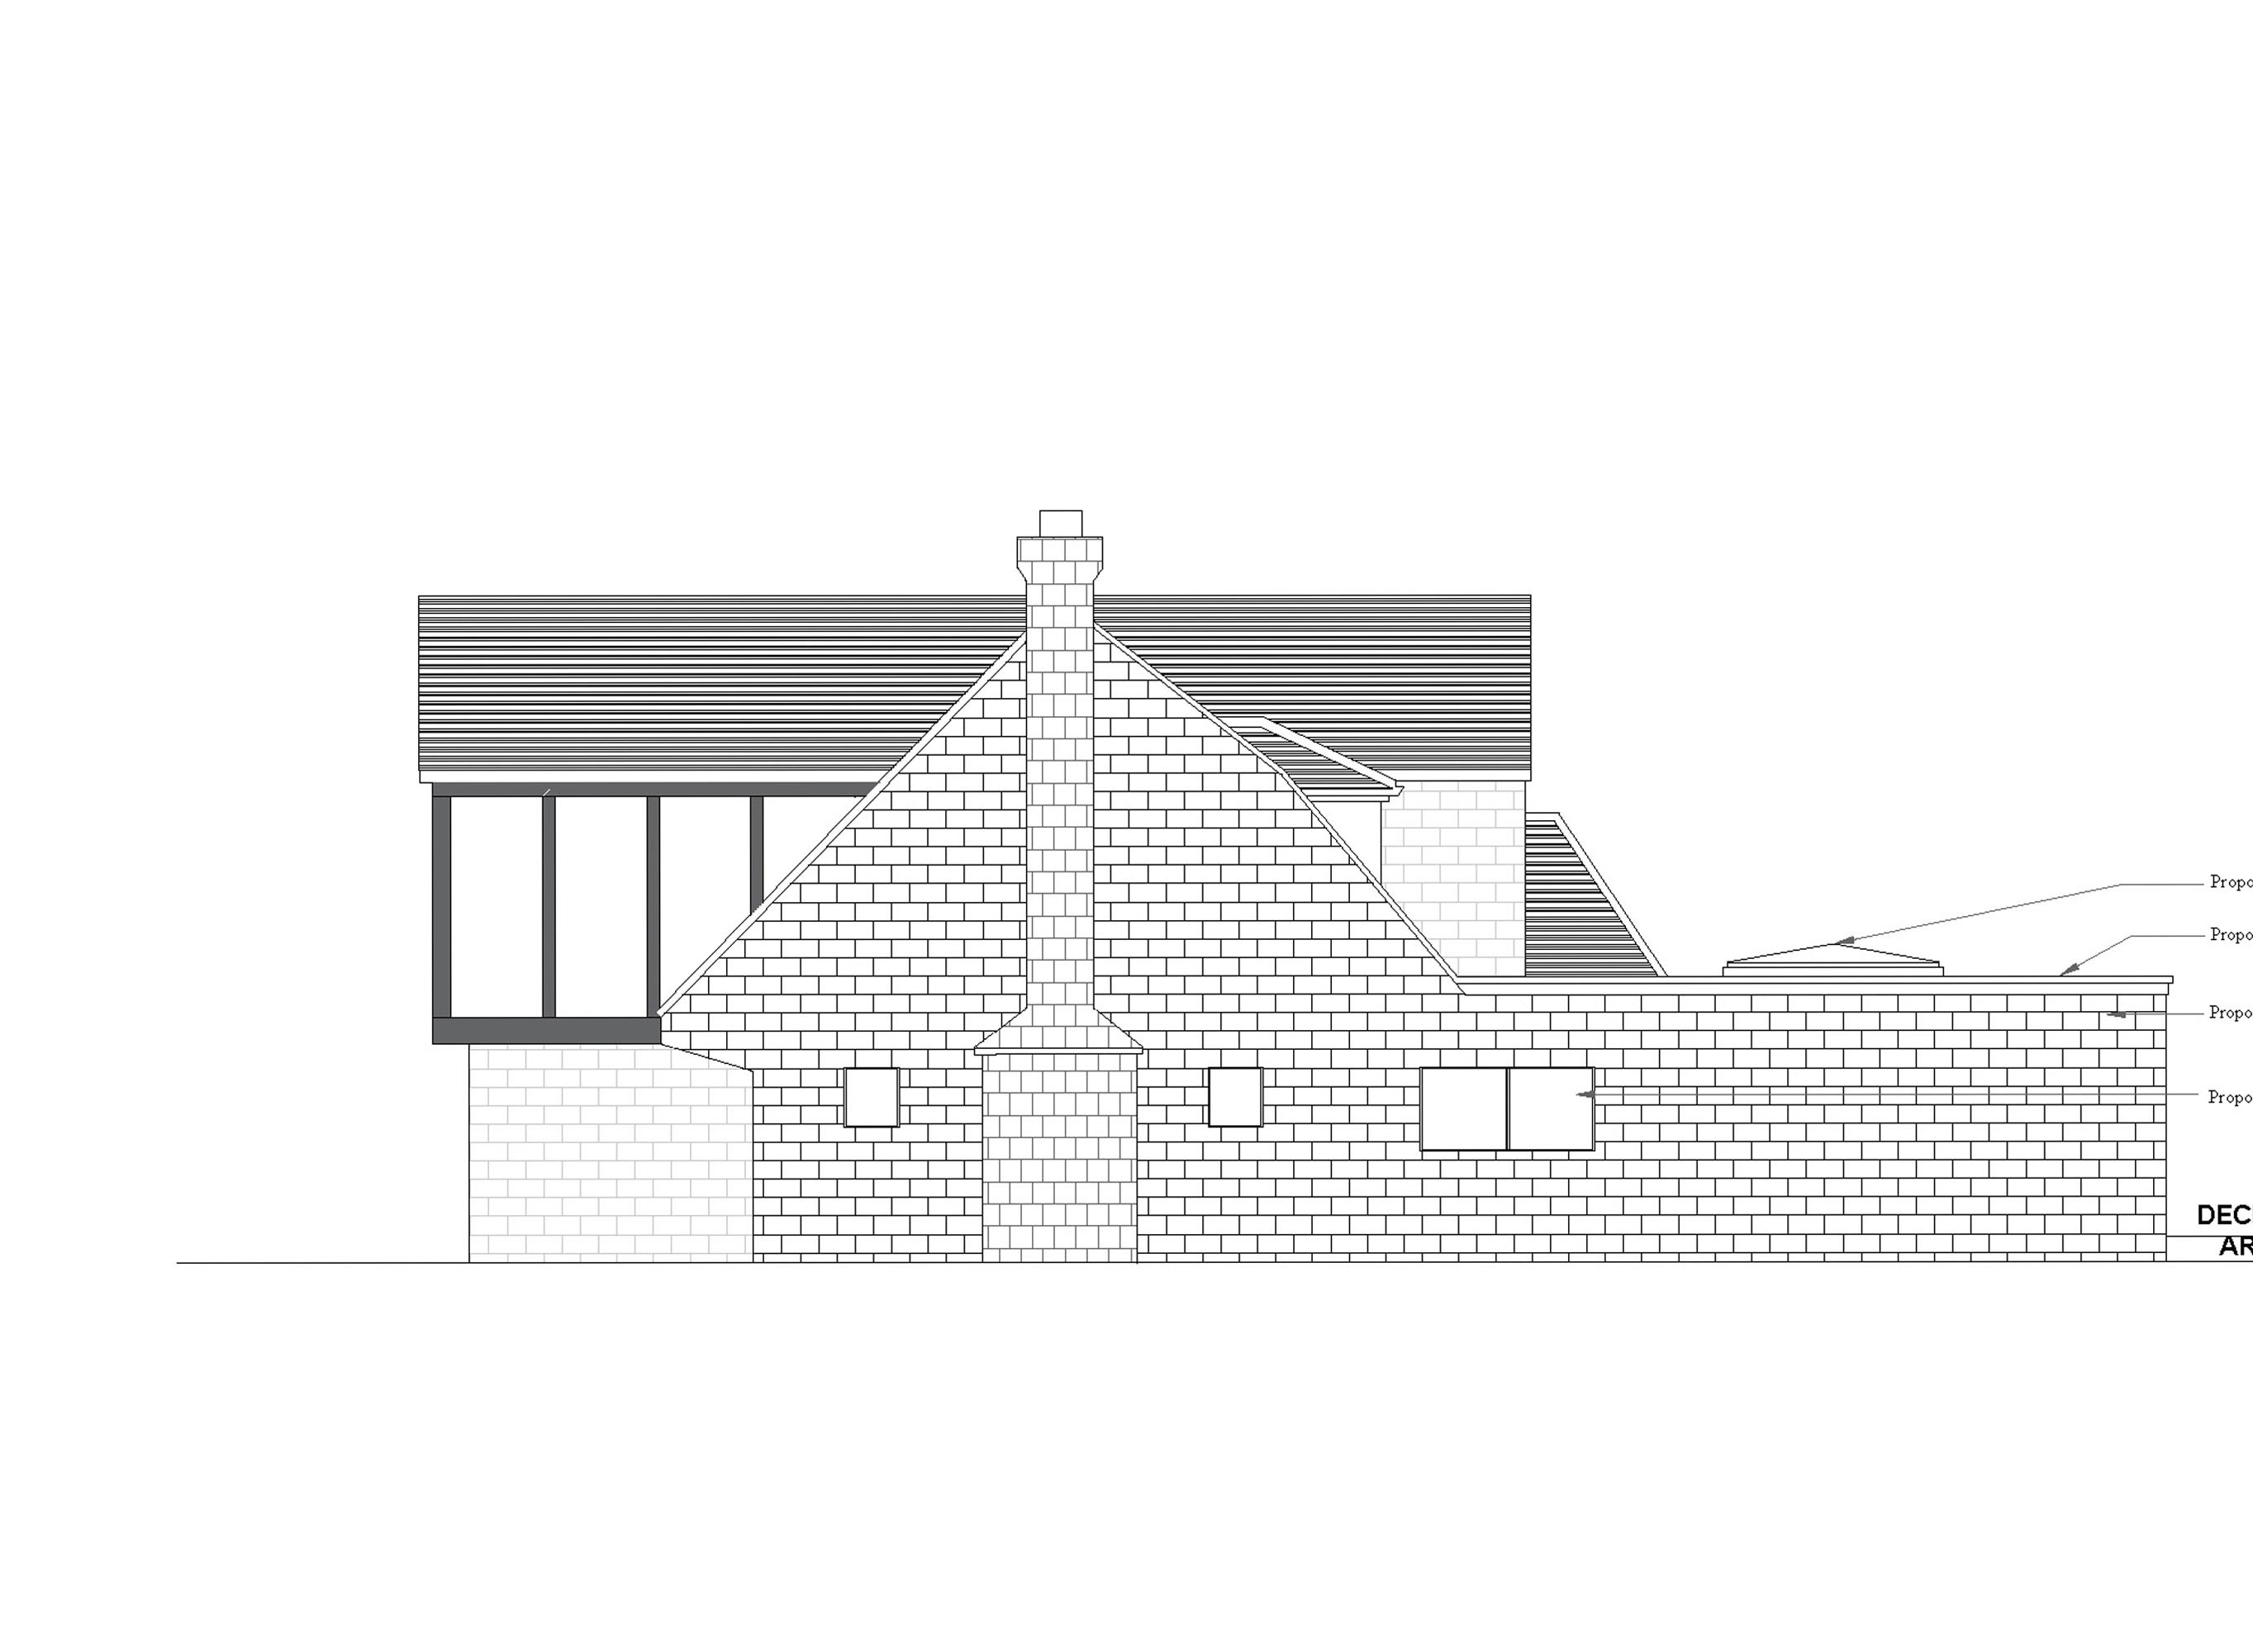 14 proposed side1 elevation